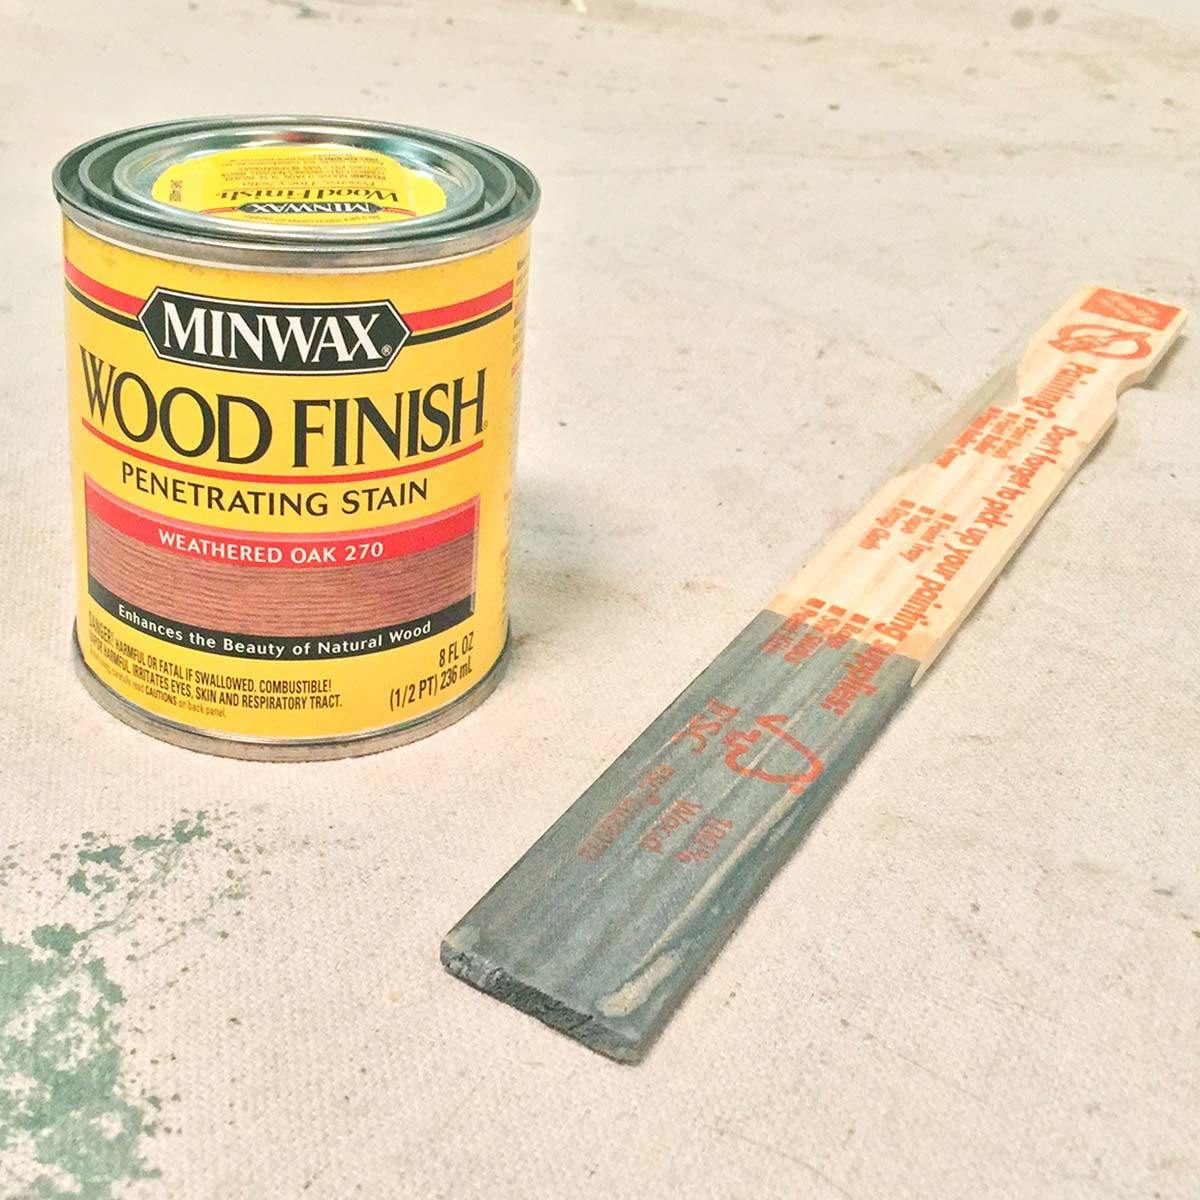 Minwax Weathered Oak